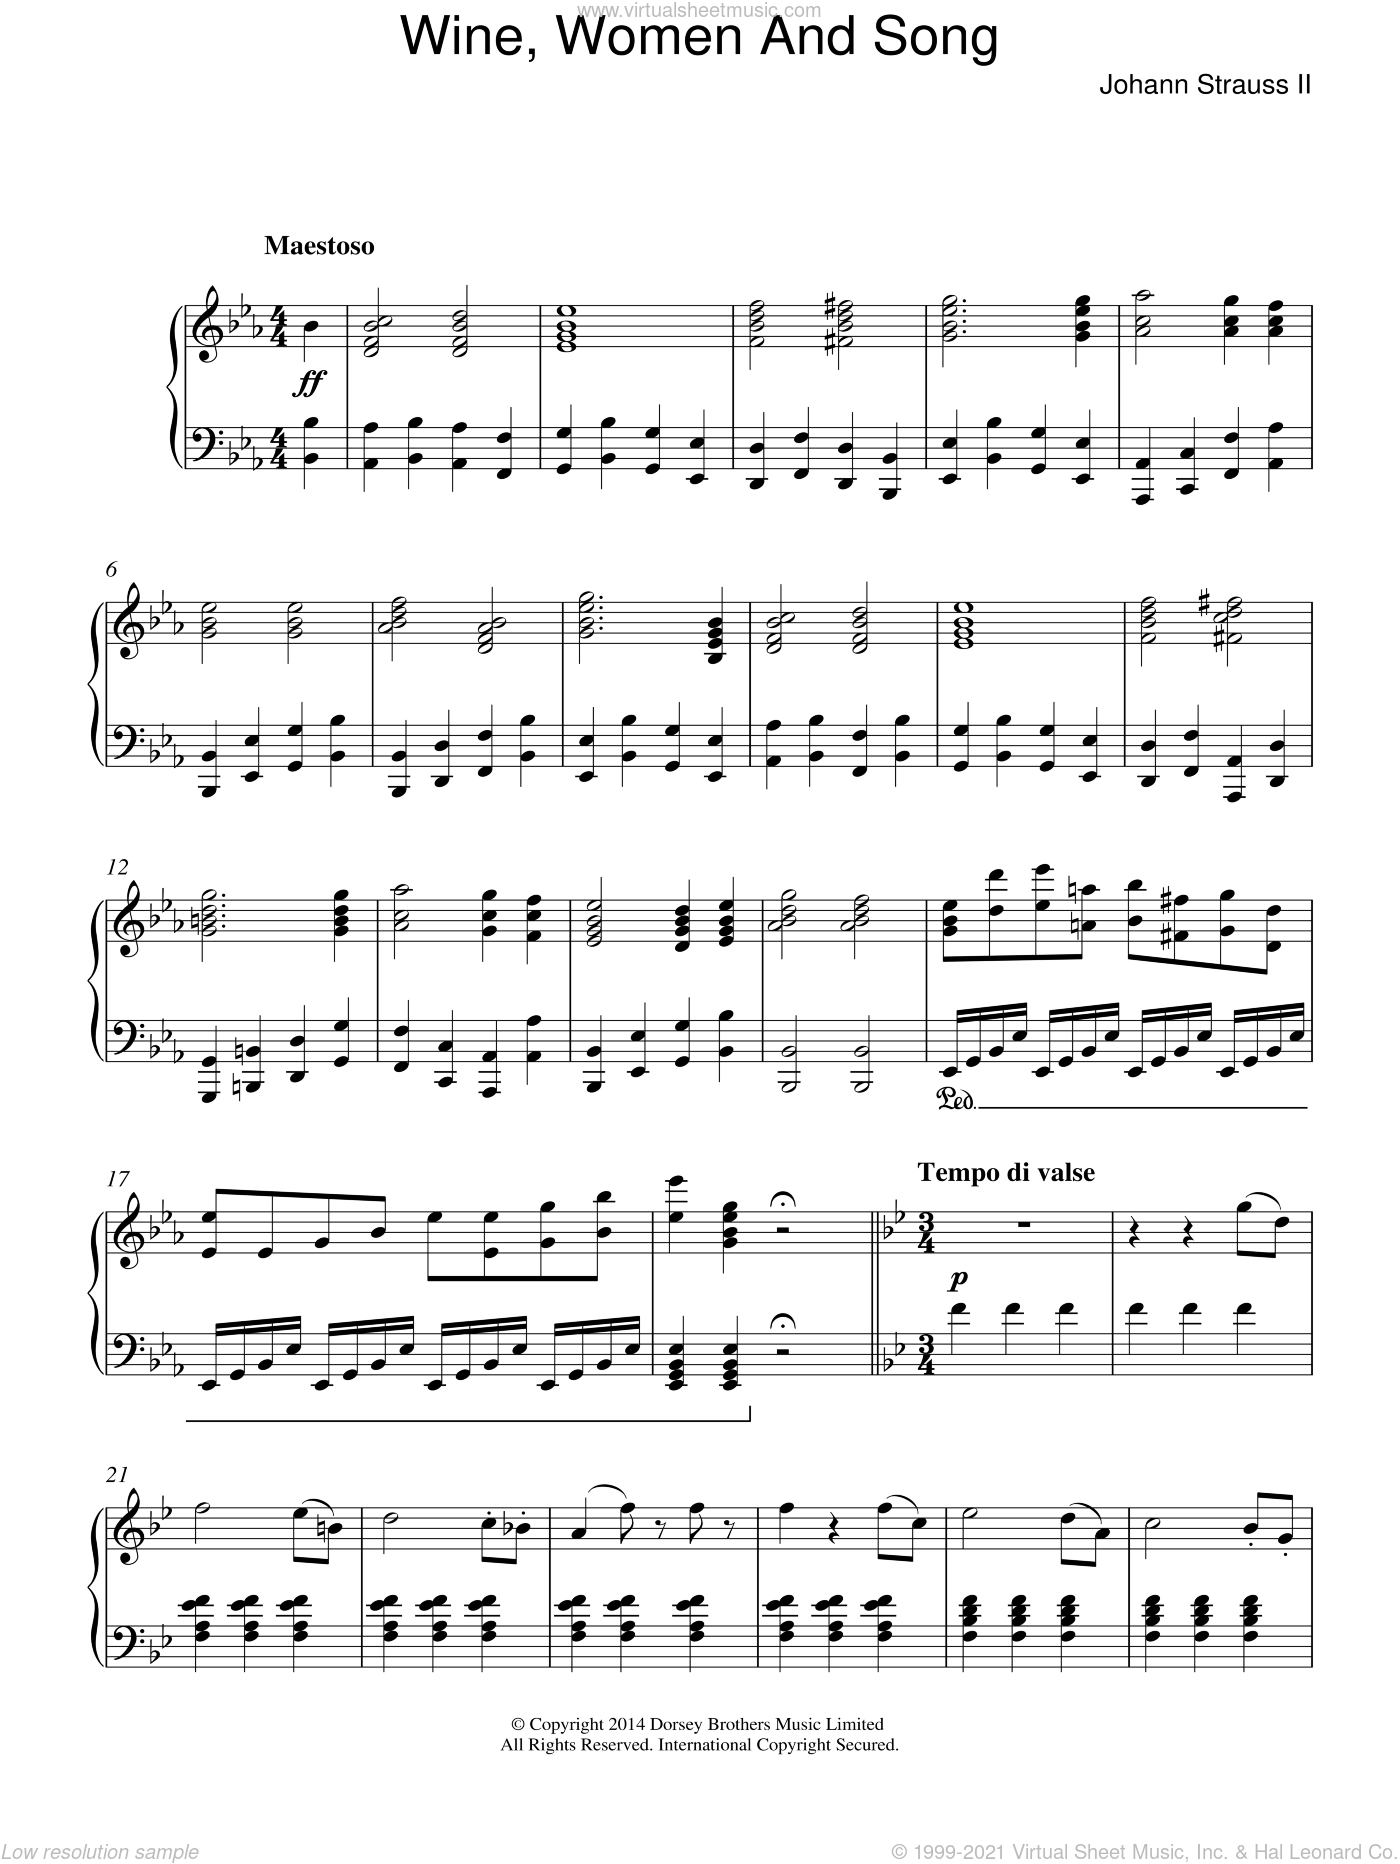 Wine, Women And Song sheet music for piano solo by Johann Strauss, Jr.